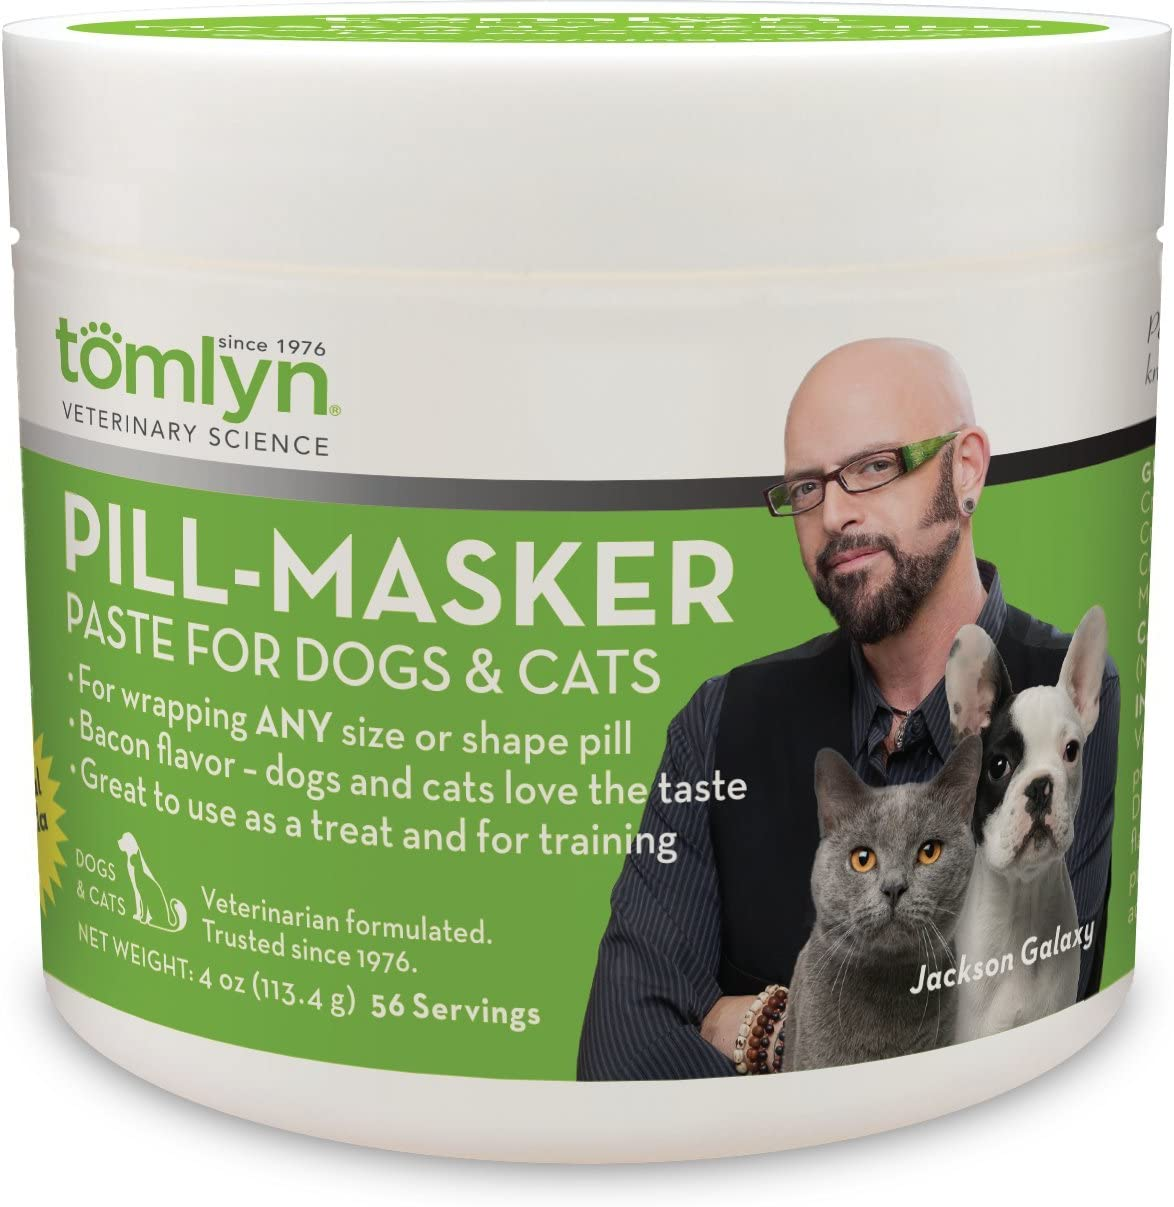 TOMLYN Pill-Masker Original for Dogs and Cats, 4oz